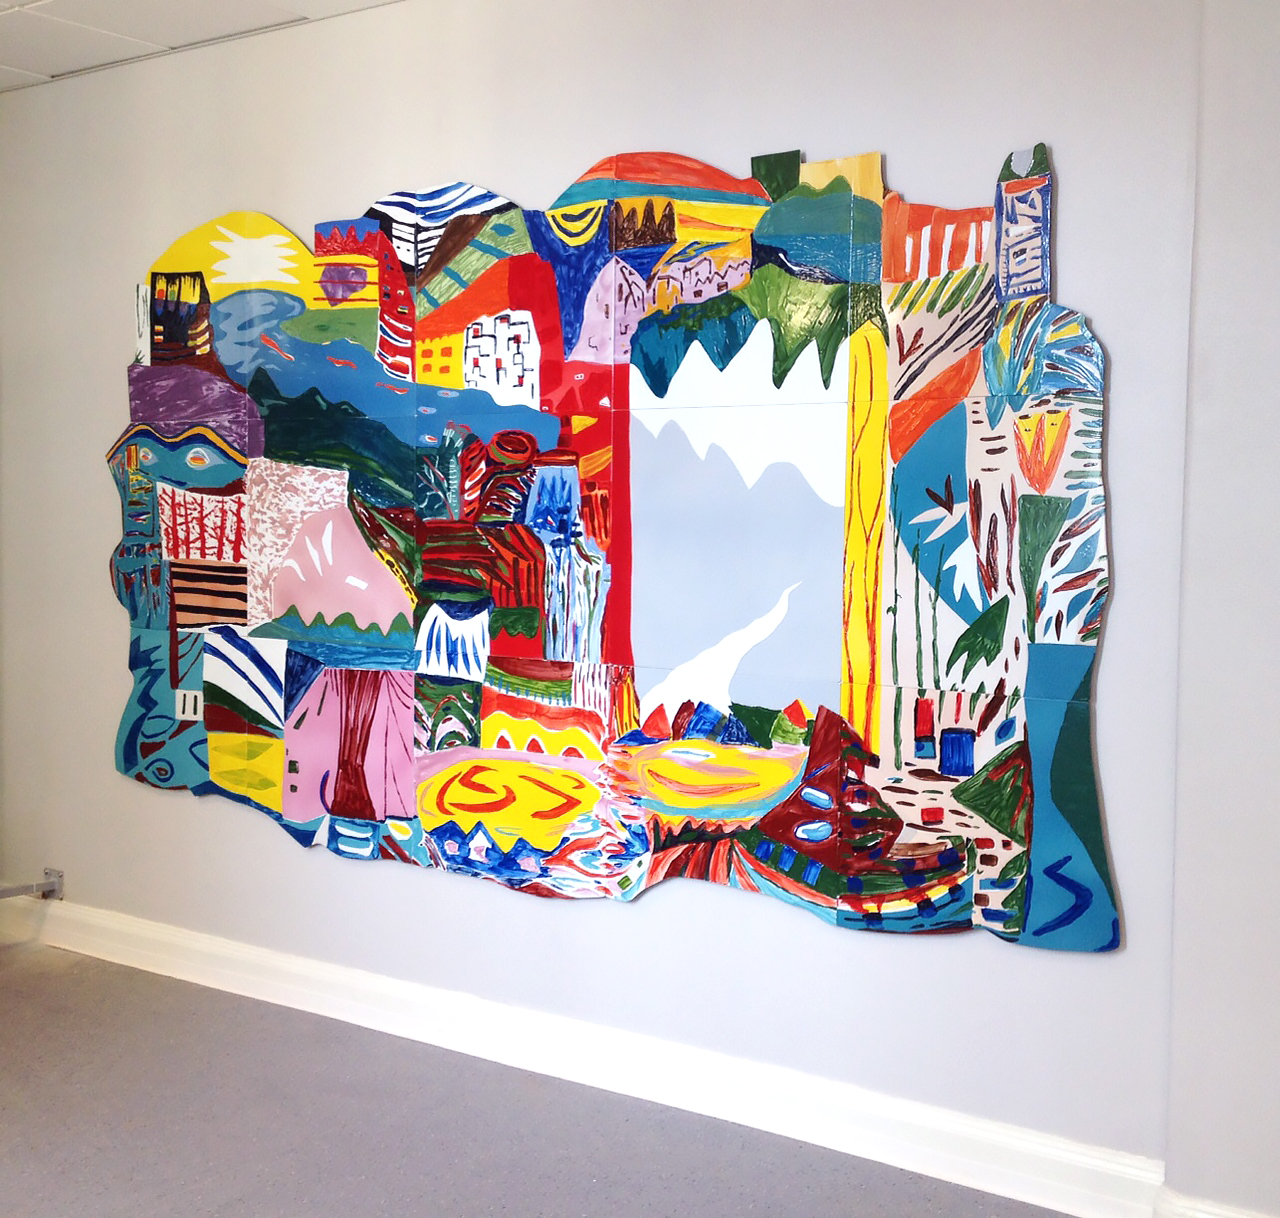 Marie Dahlstrand, Distant Dream, 2016, enamel painting on metal, 210 x 340 cm (82.7 x 133.8 inches), Elsa Brändström School, Linköping.